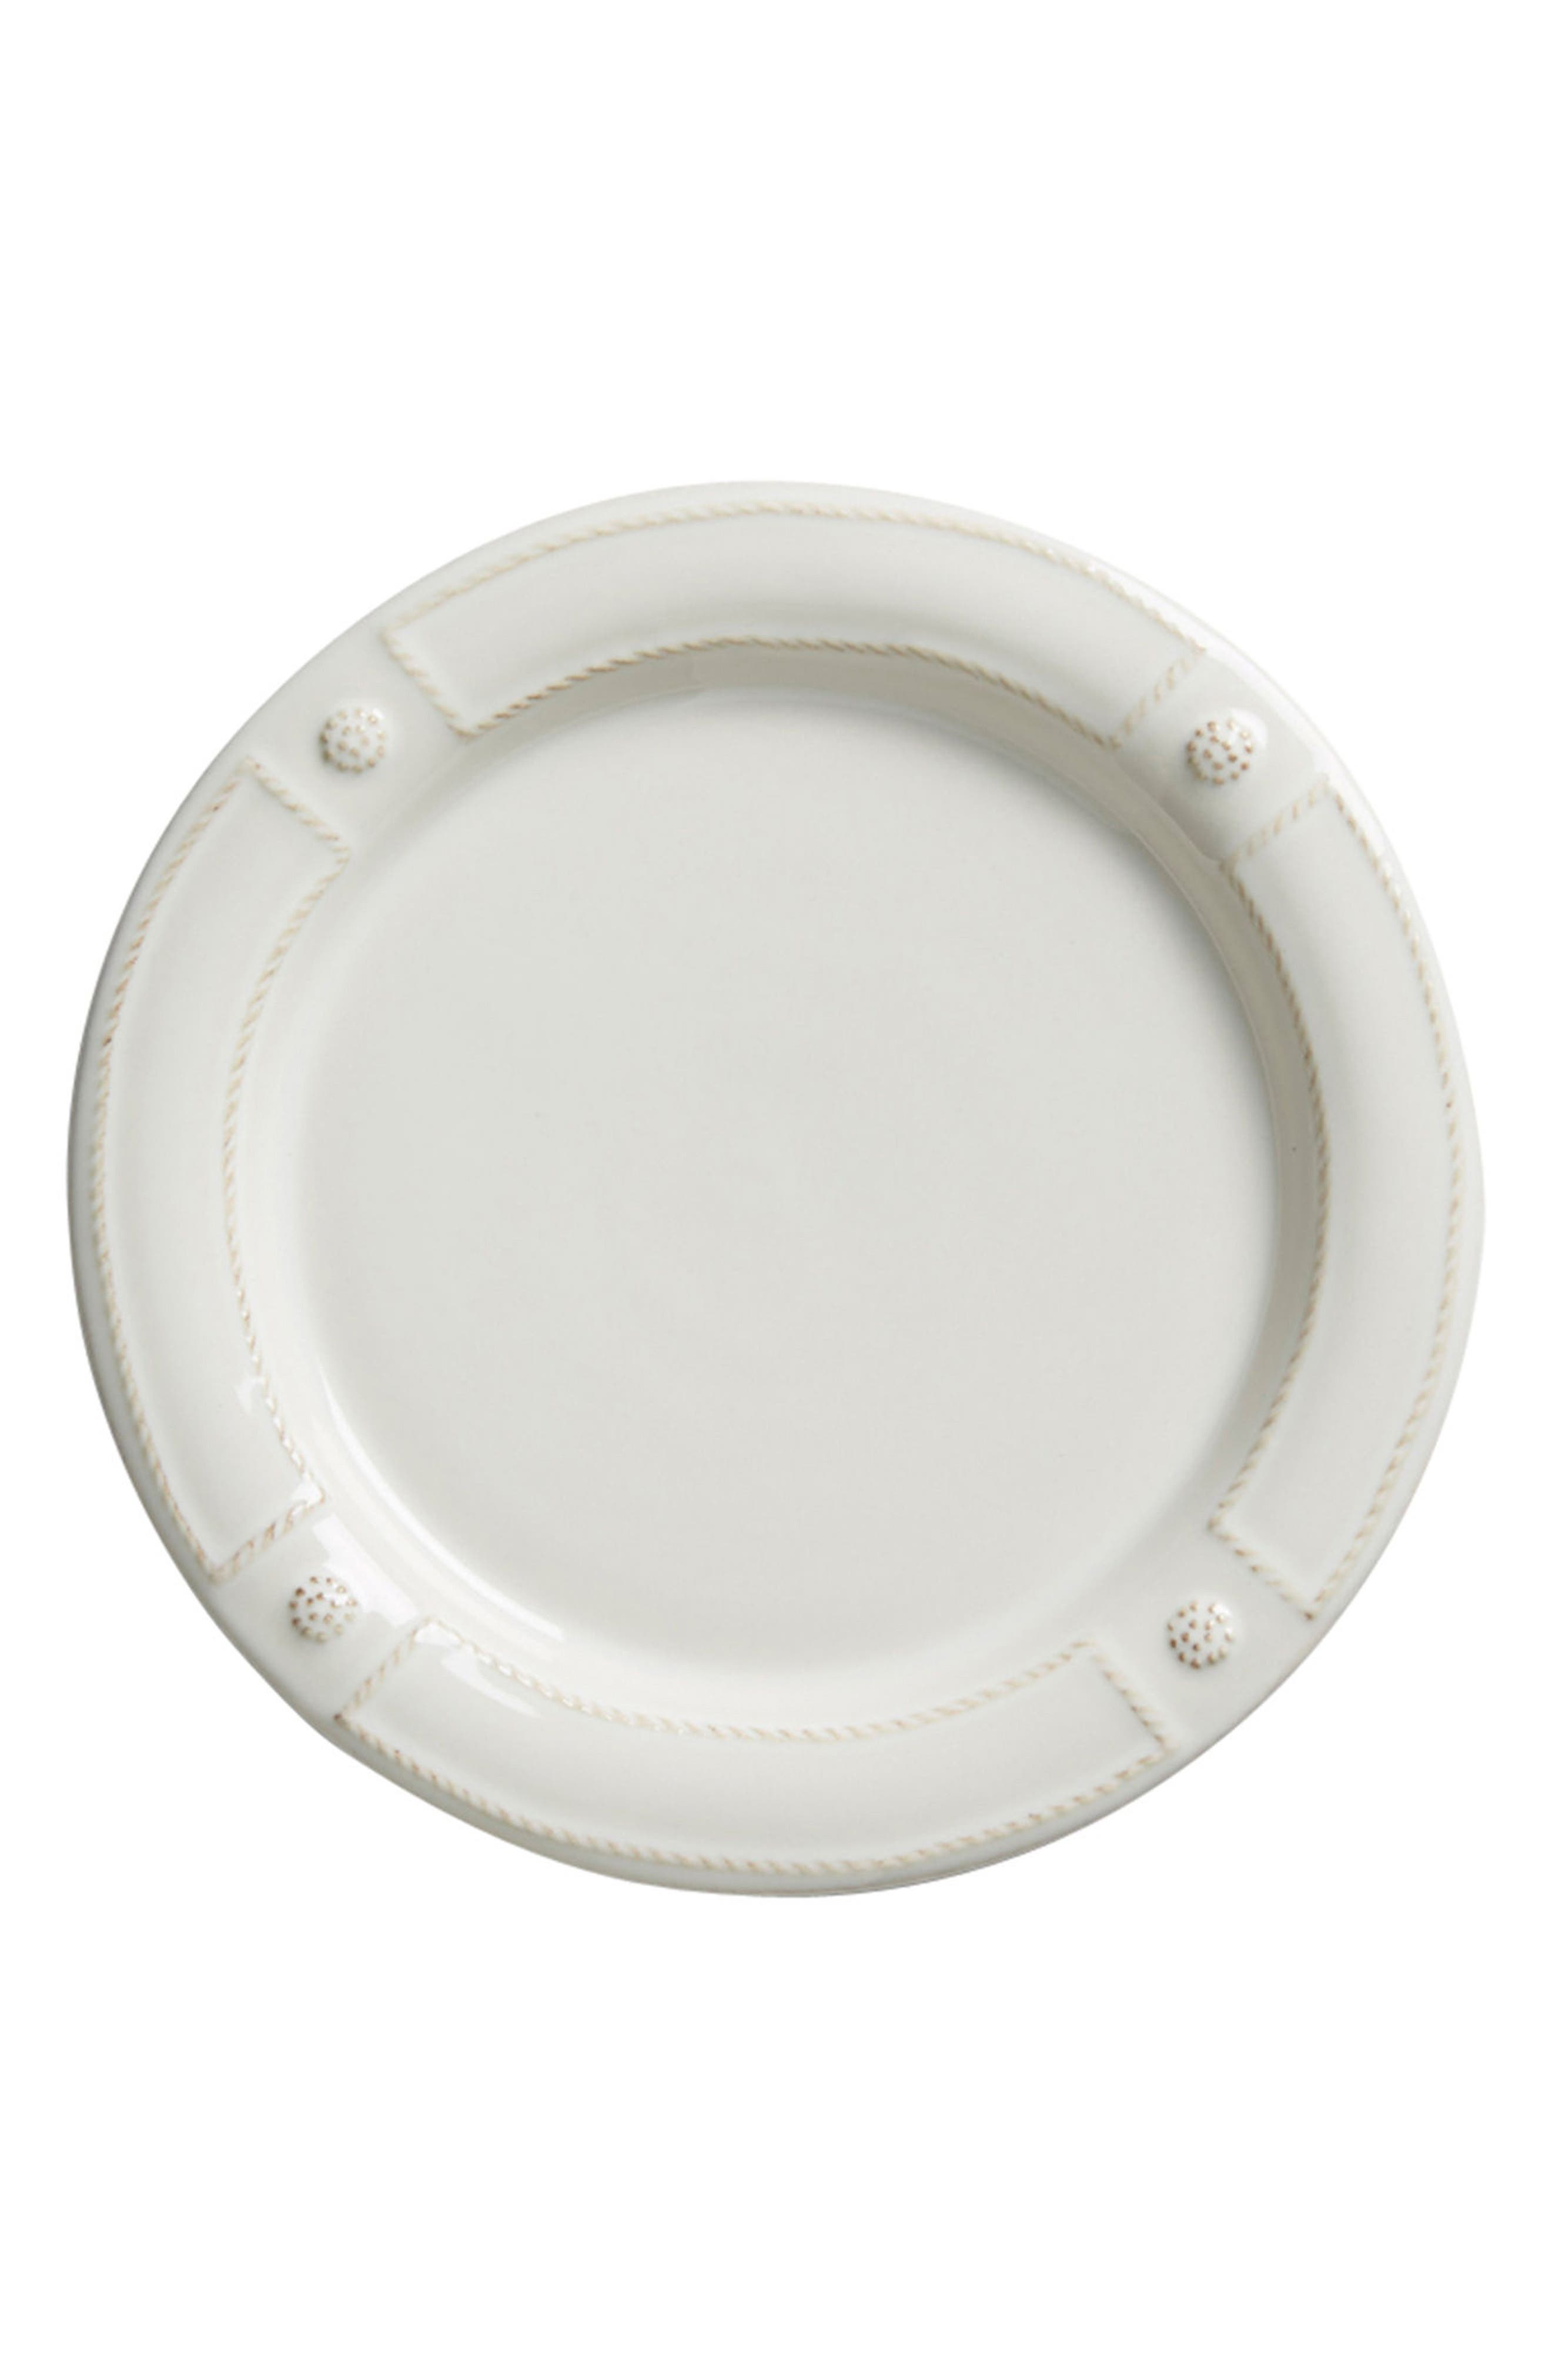 Berry & Thread French Panel Ceramic Salad Plate,                             Main thumbnail 1, color,                             Whitewash